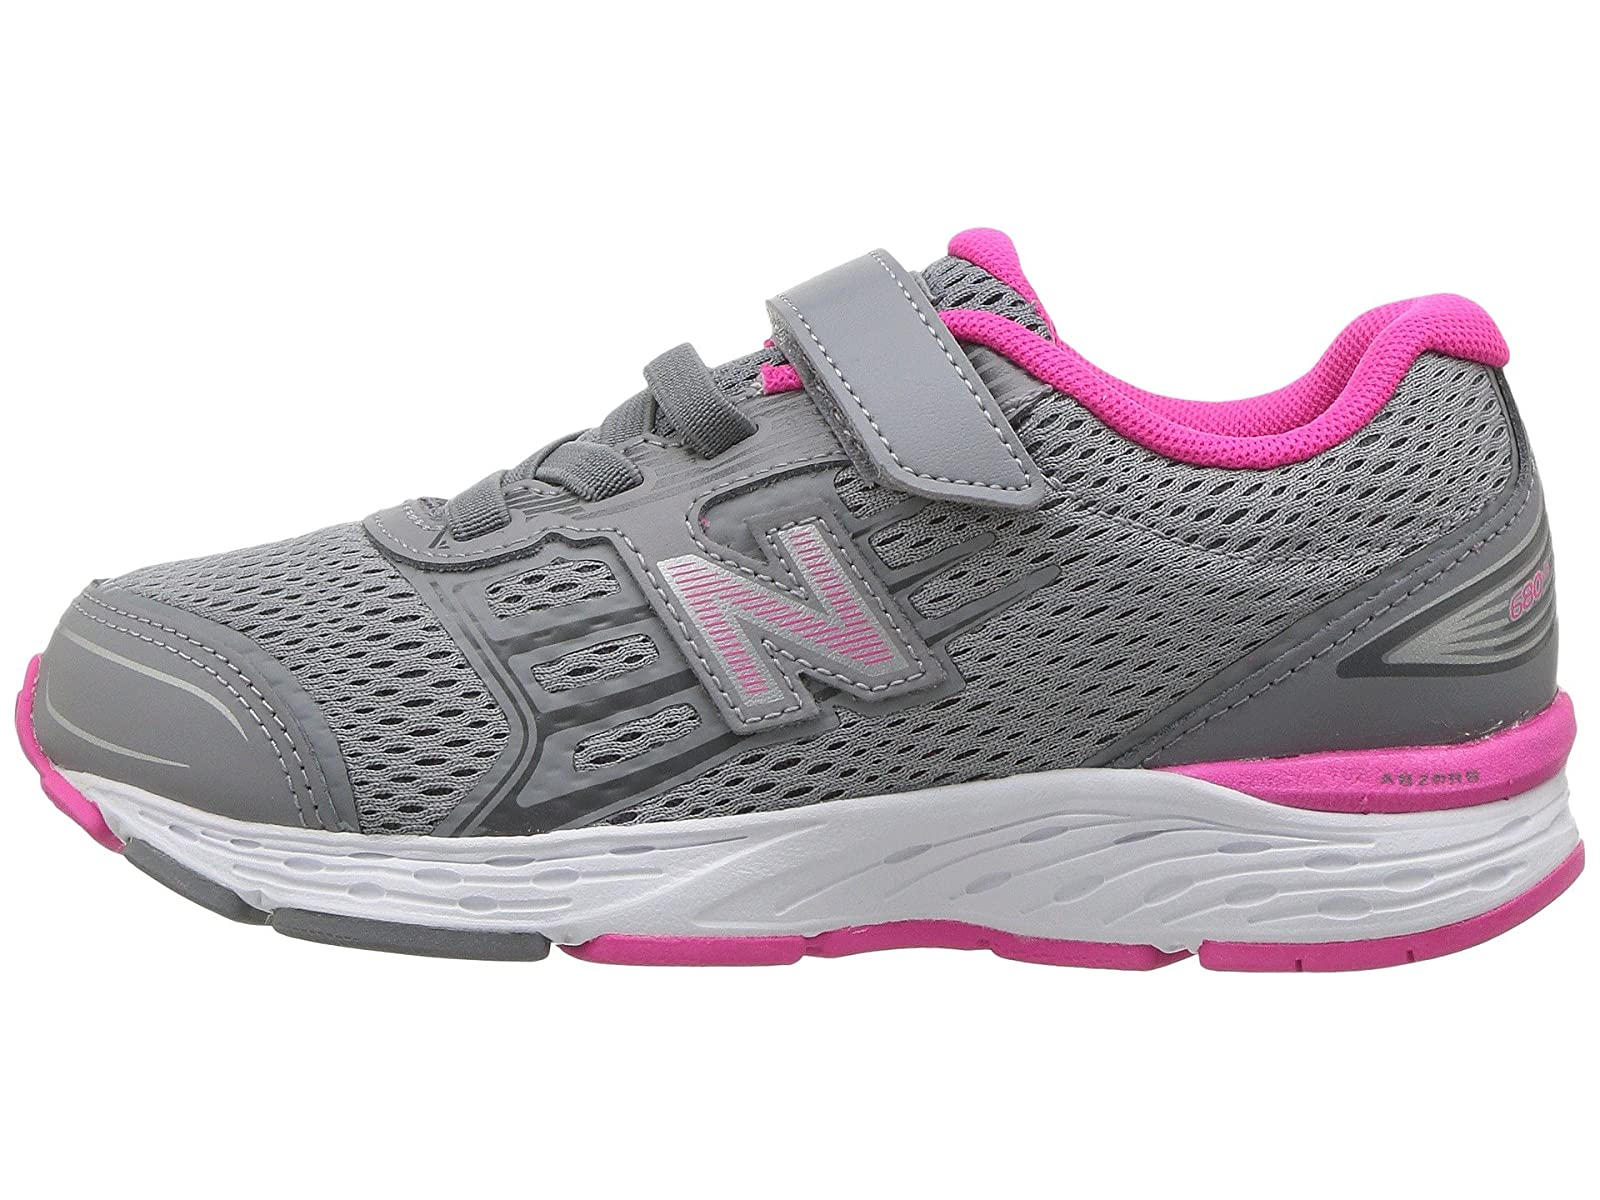 Girls-039-s-Shoes-New-Balance-Kids-KA680v5Y-Little-Kid-Big-Kid thumbnail 5